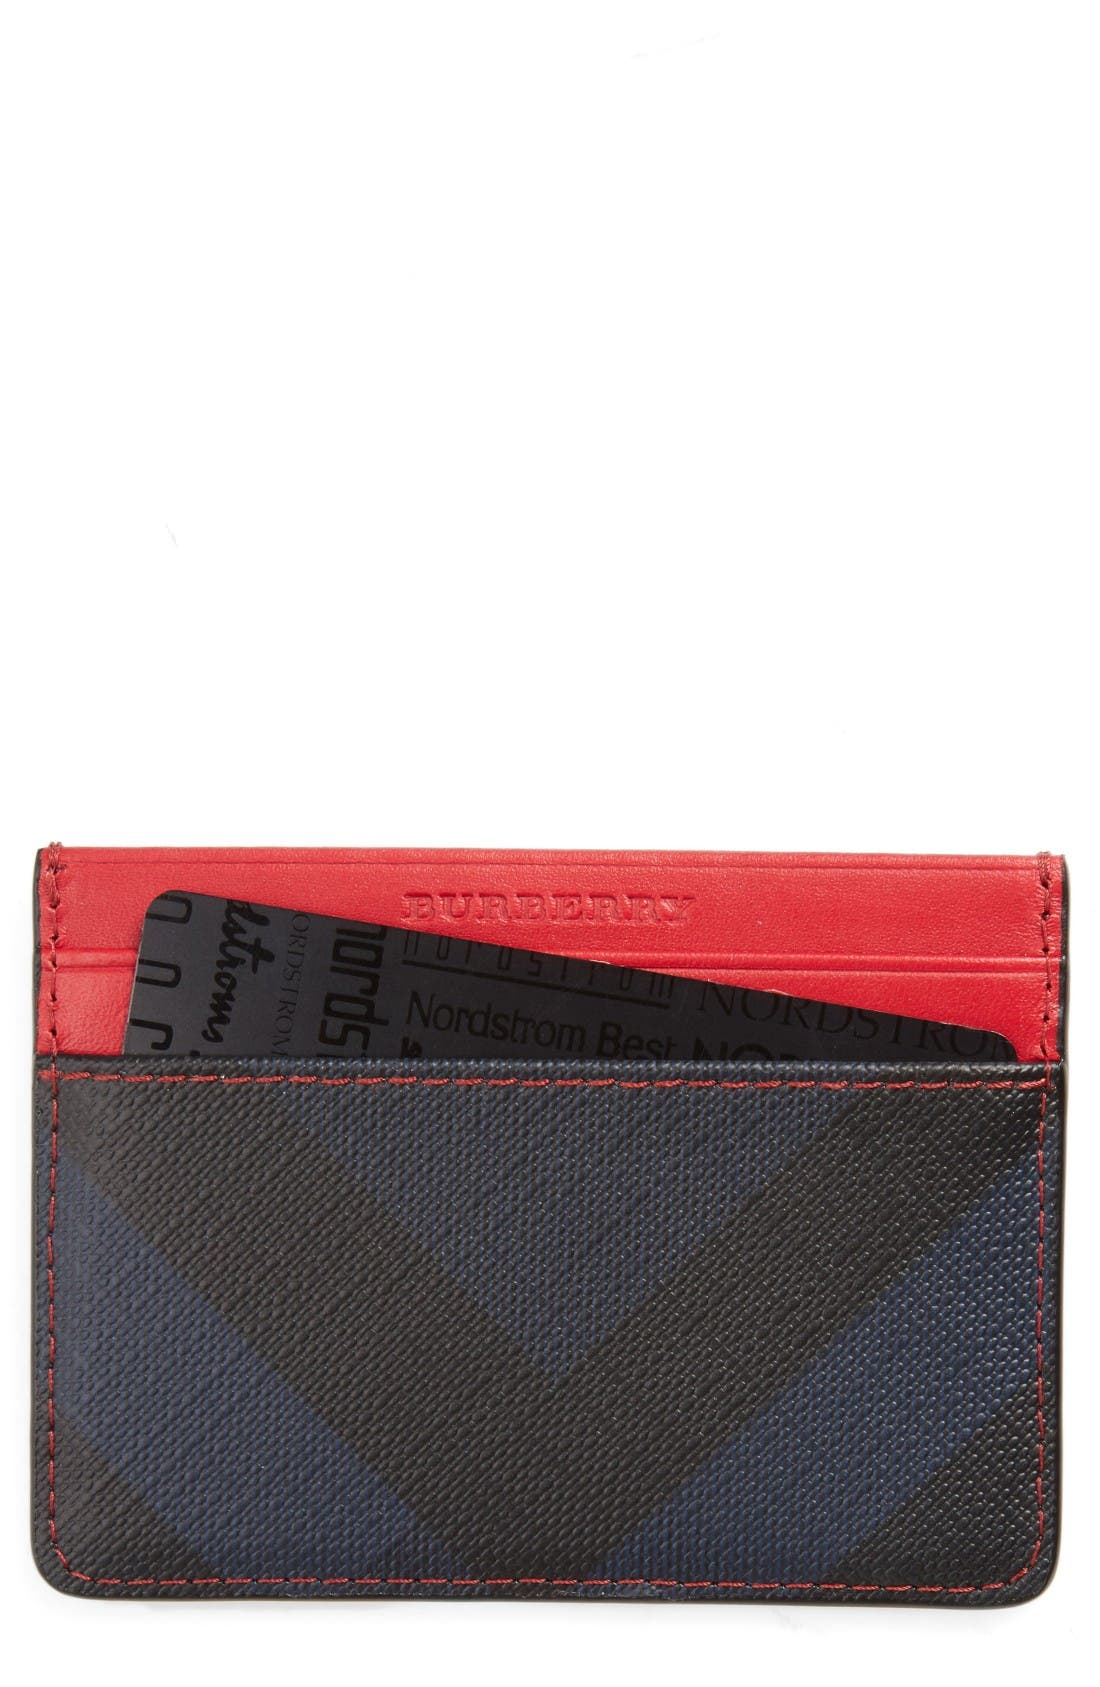 BURBERRY Sandon Card Case